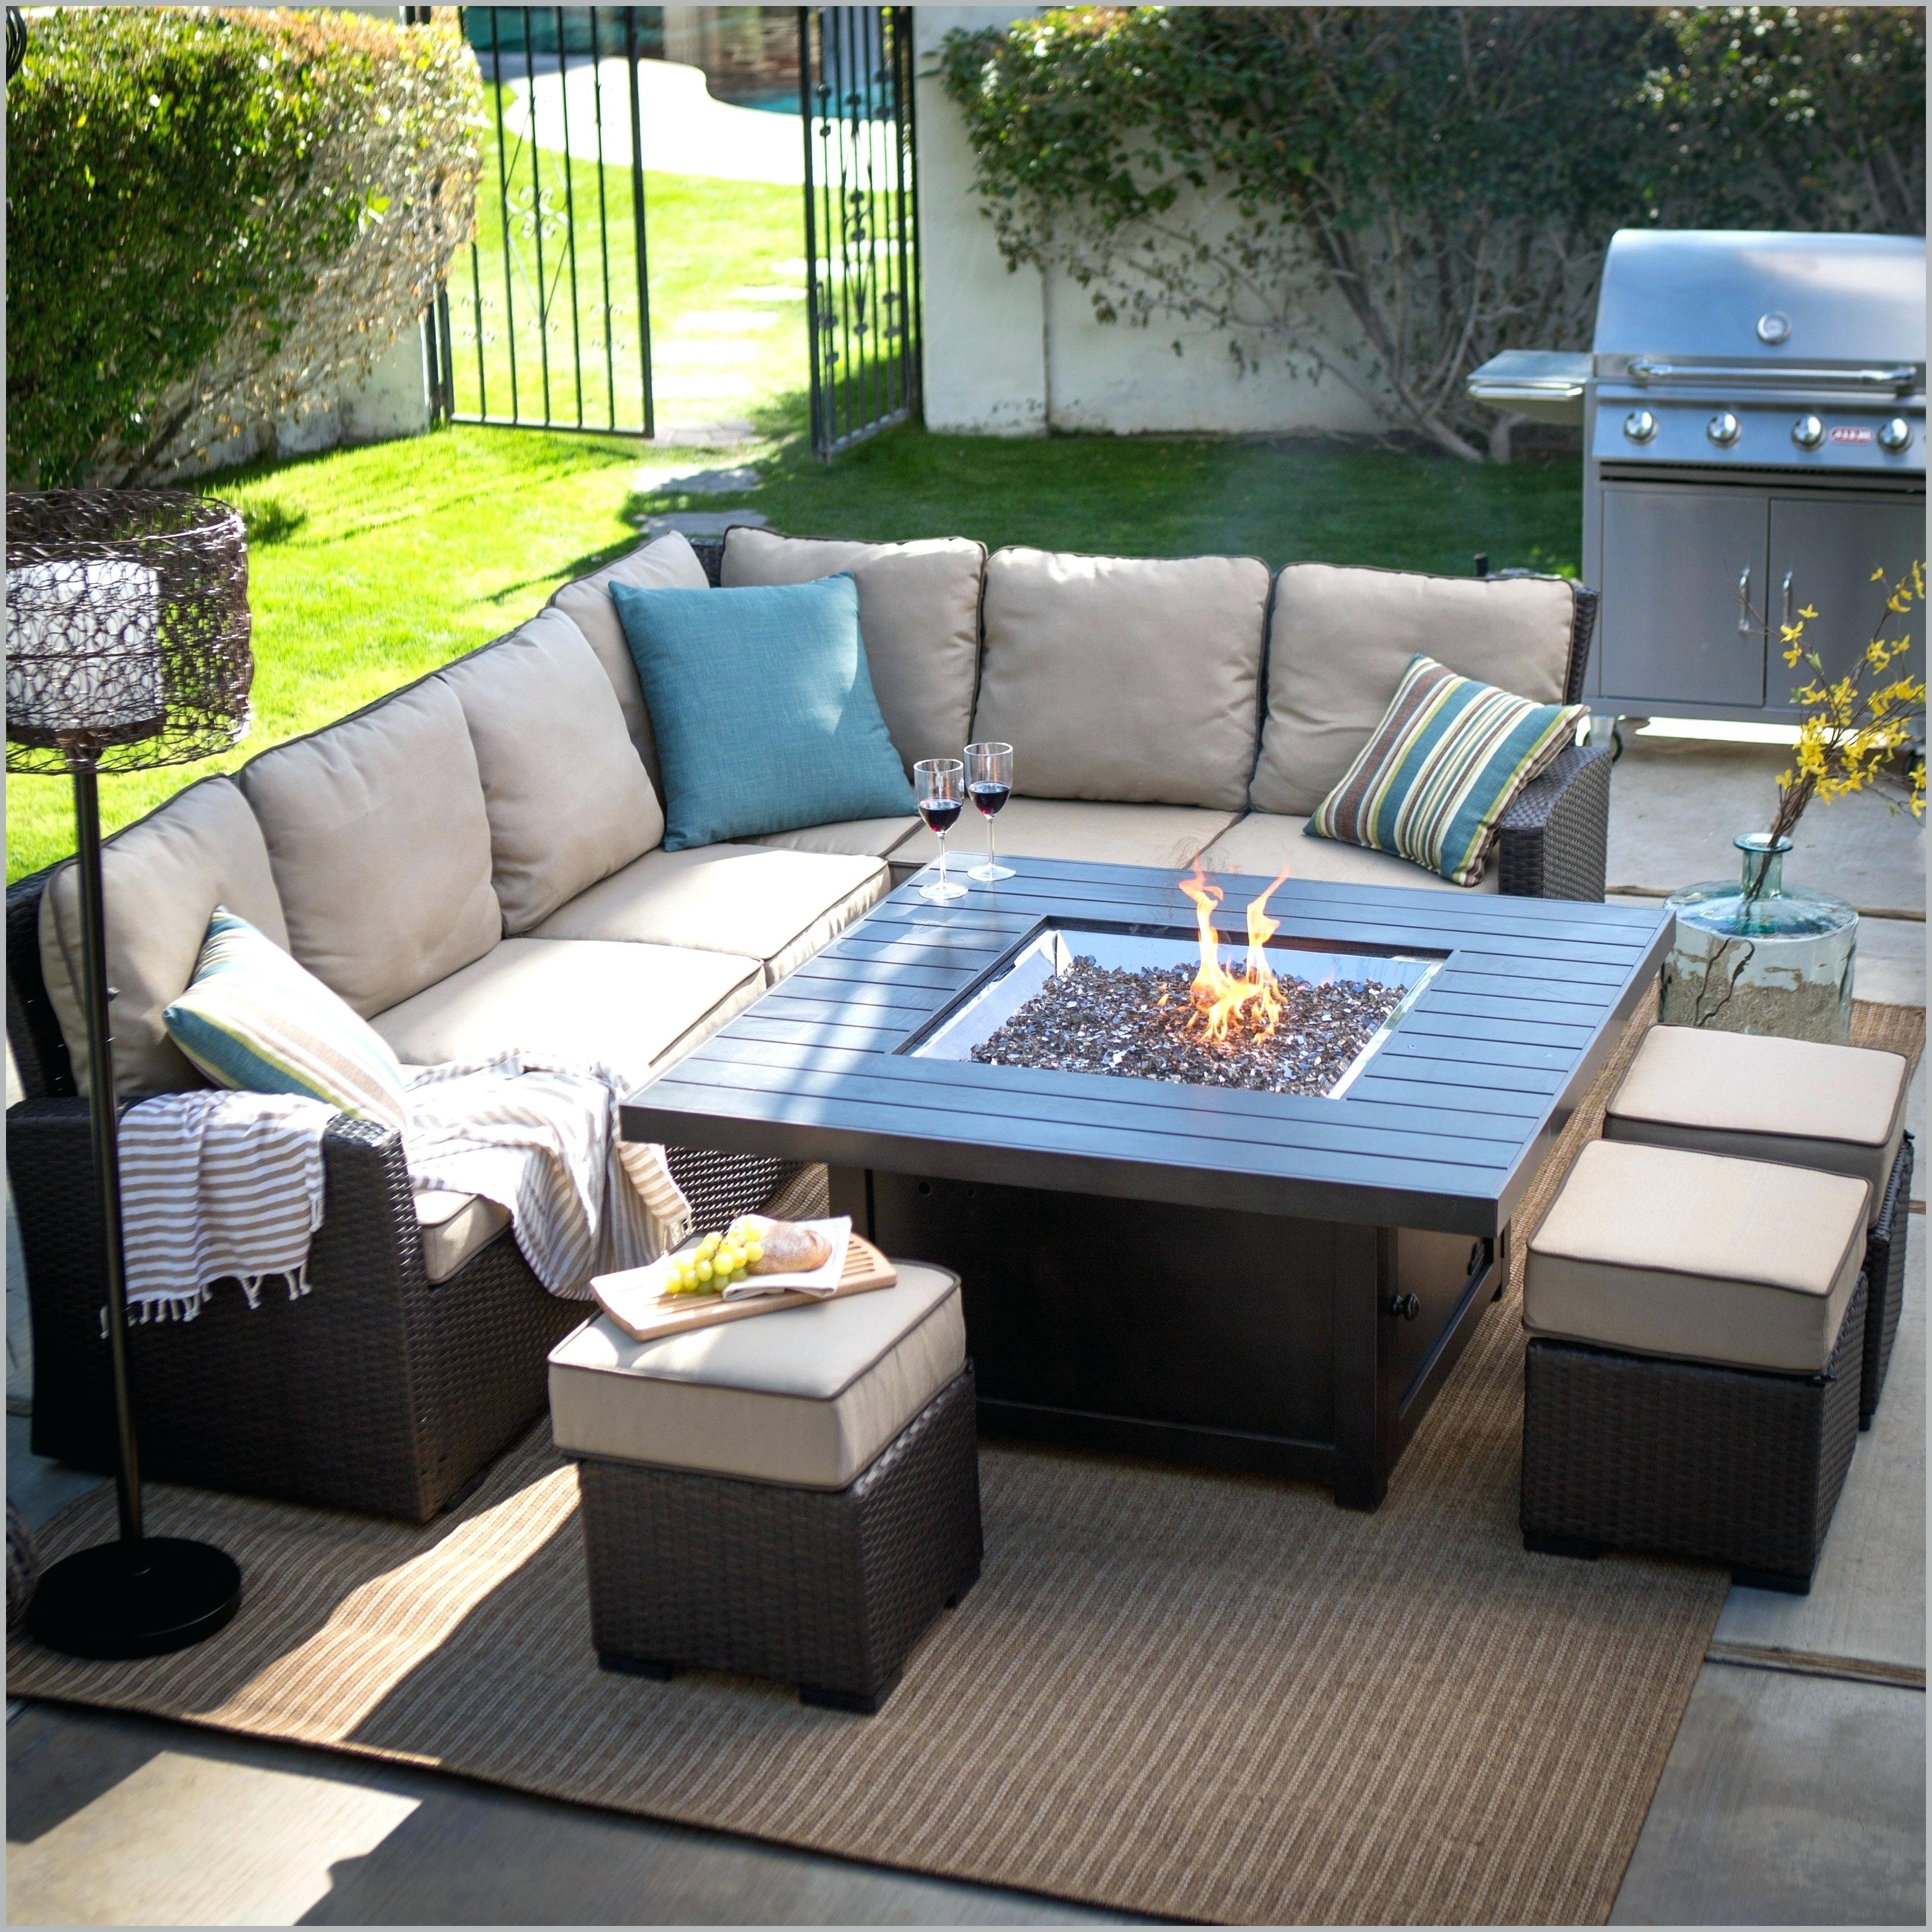 Patio Conversation Sets With Gas Fire Pit With Most Recently Released Patio Conversation Sets Wicker Sale With Gas Fire Pit Set Canada (View 16 of 20)